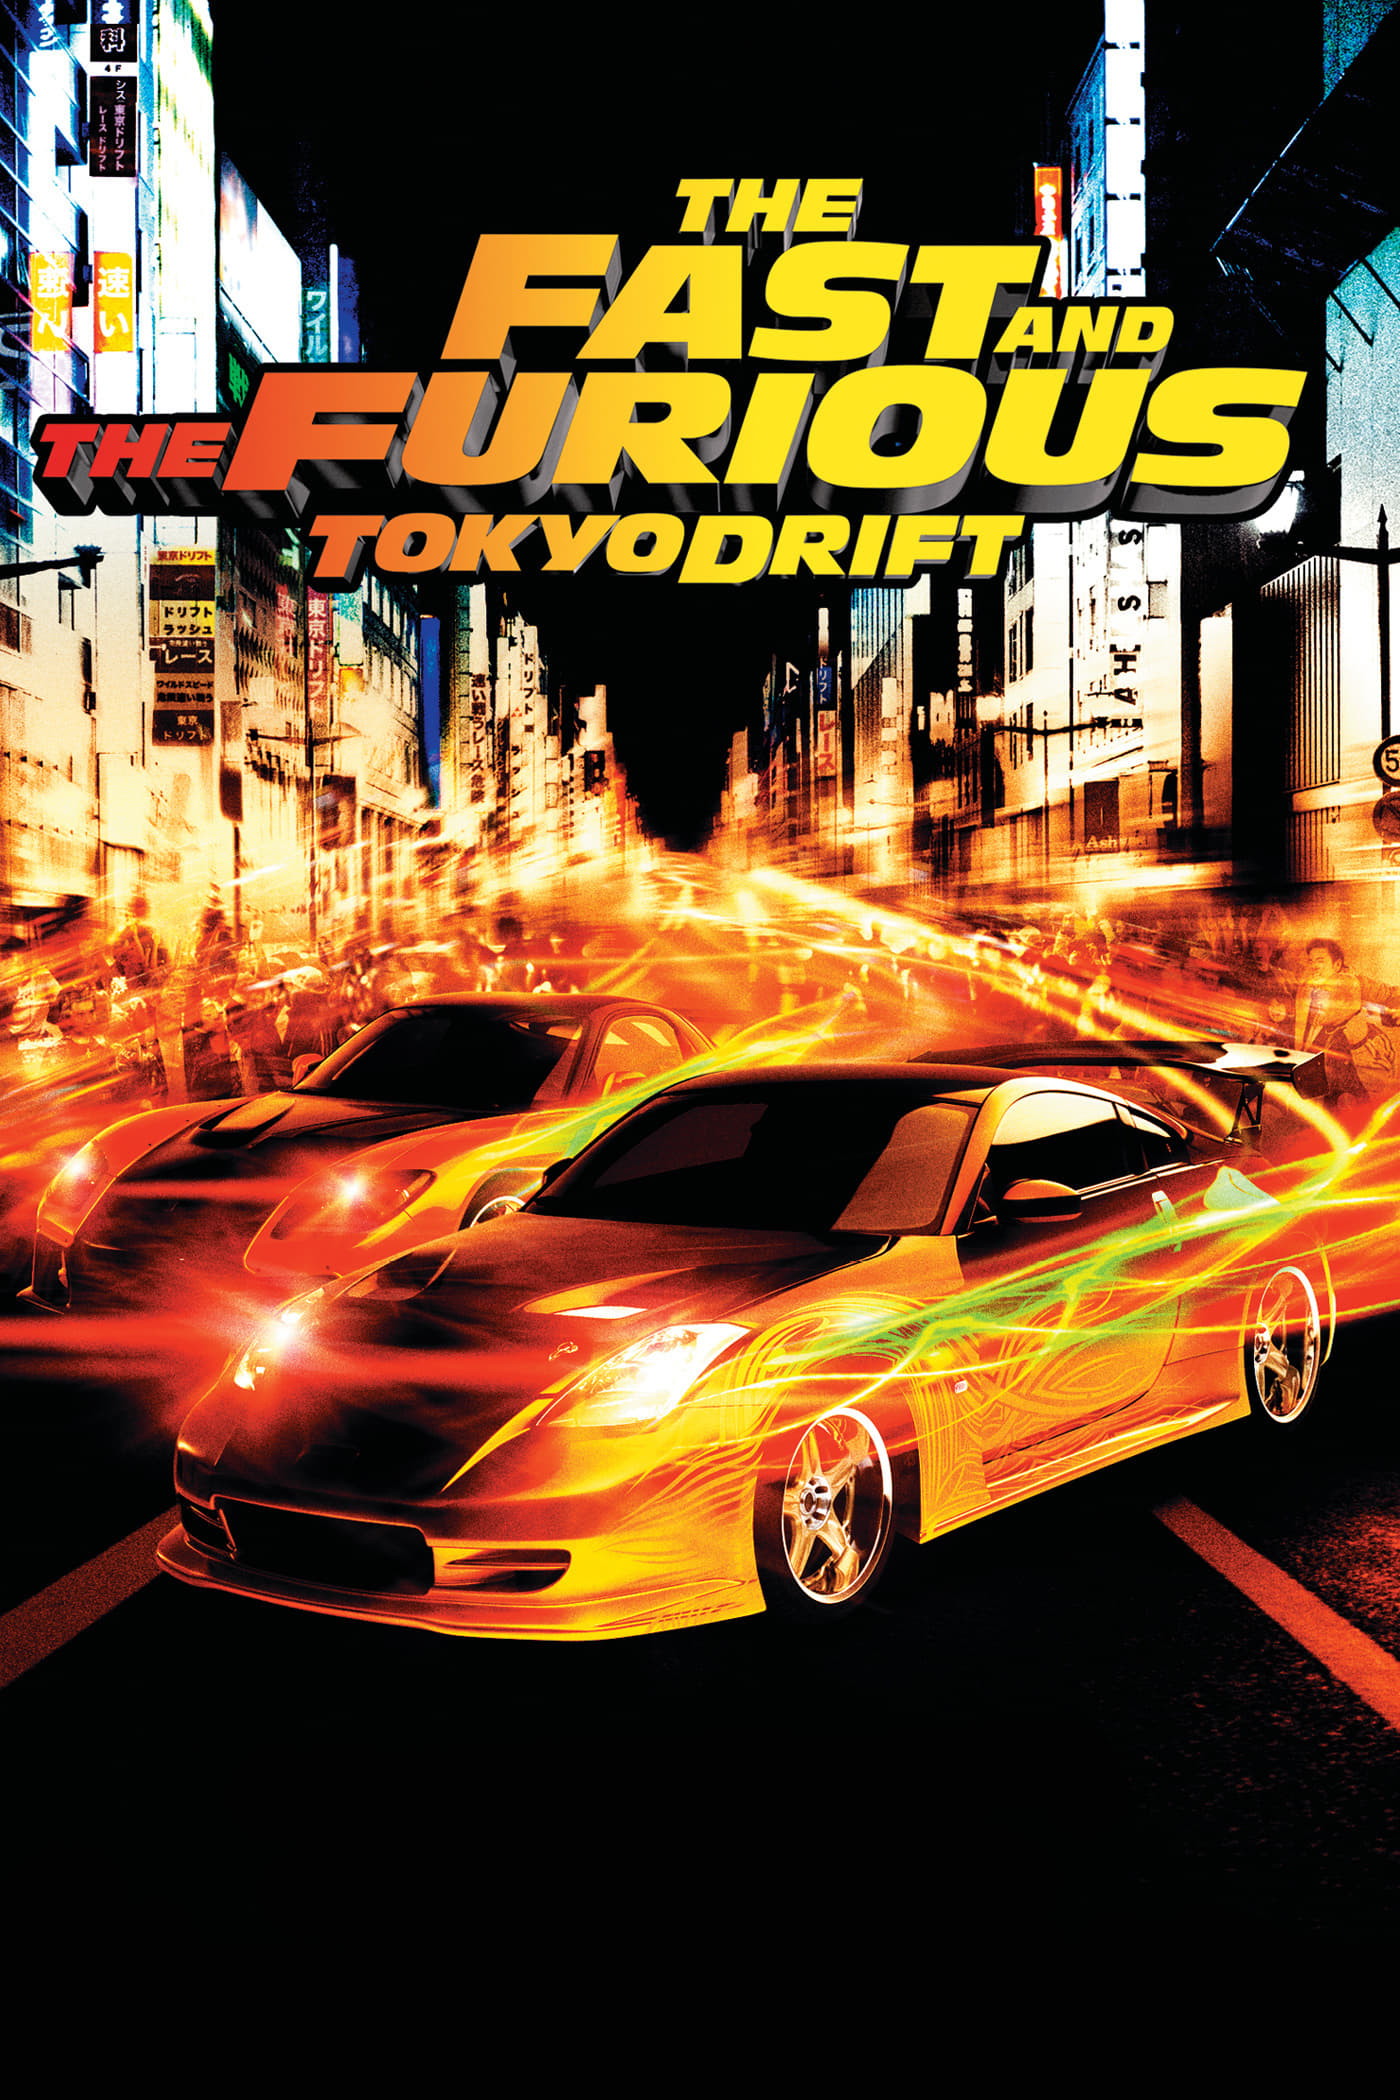 fast and furious tokyo drift full movie free download mp4